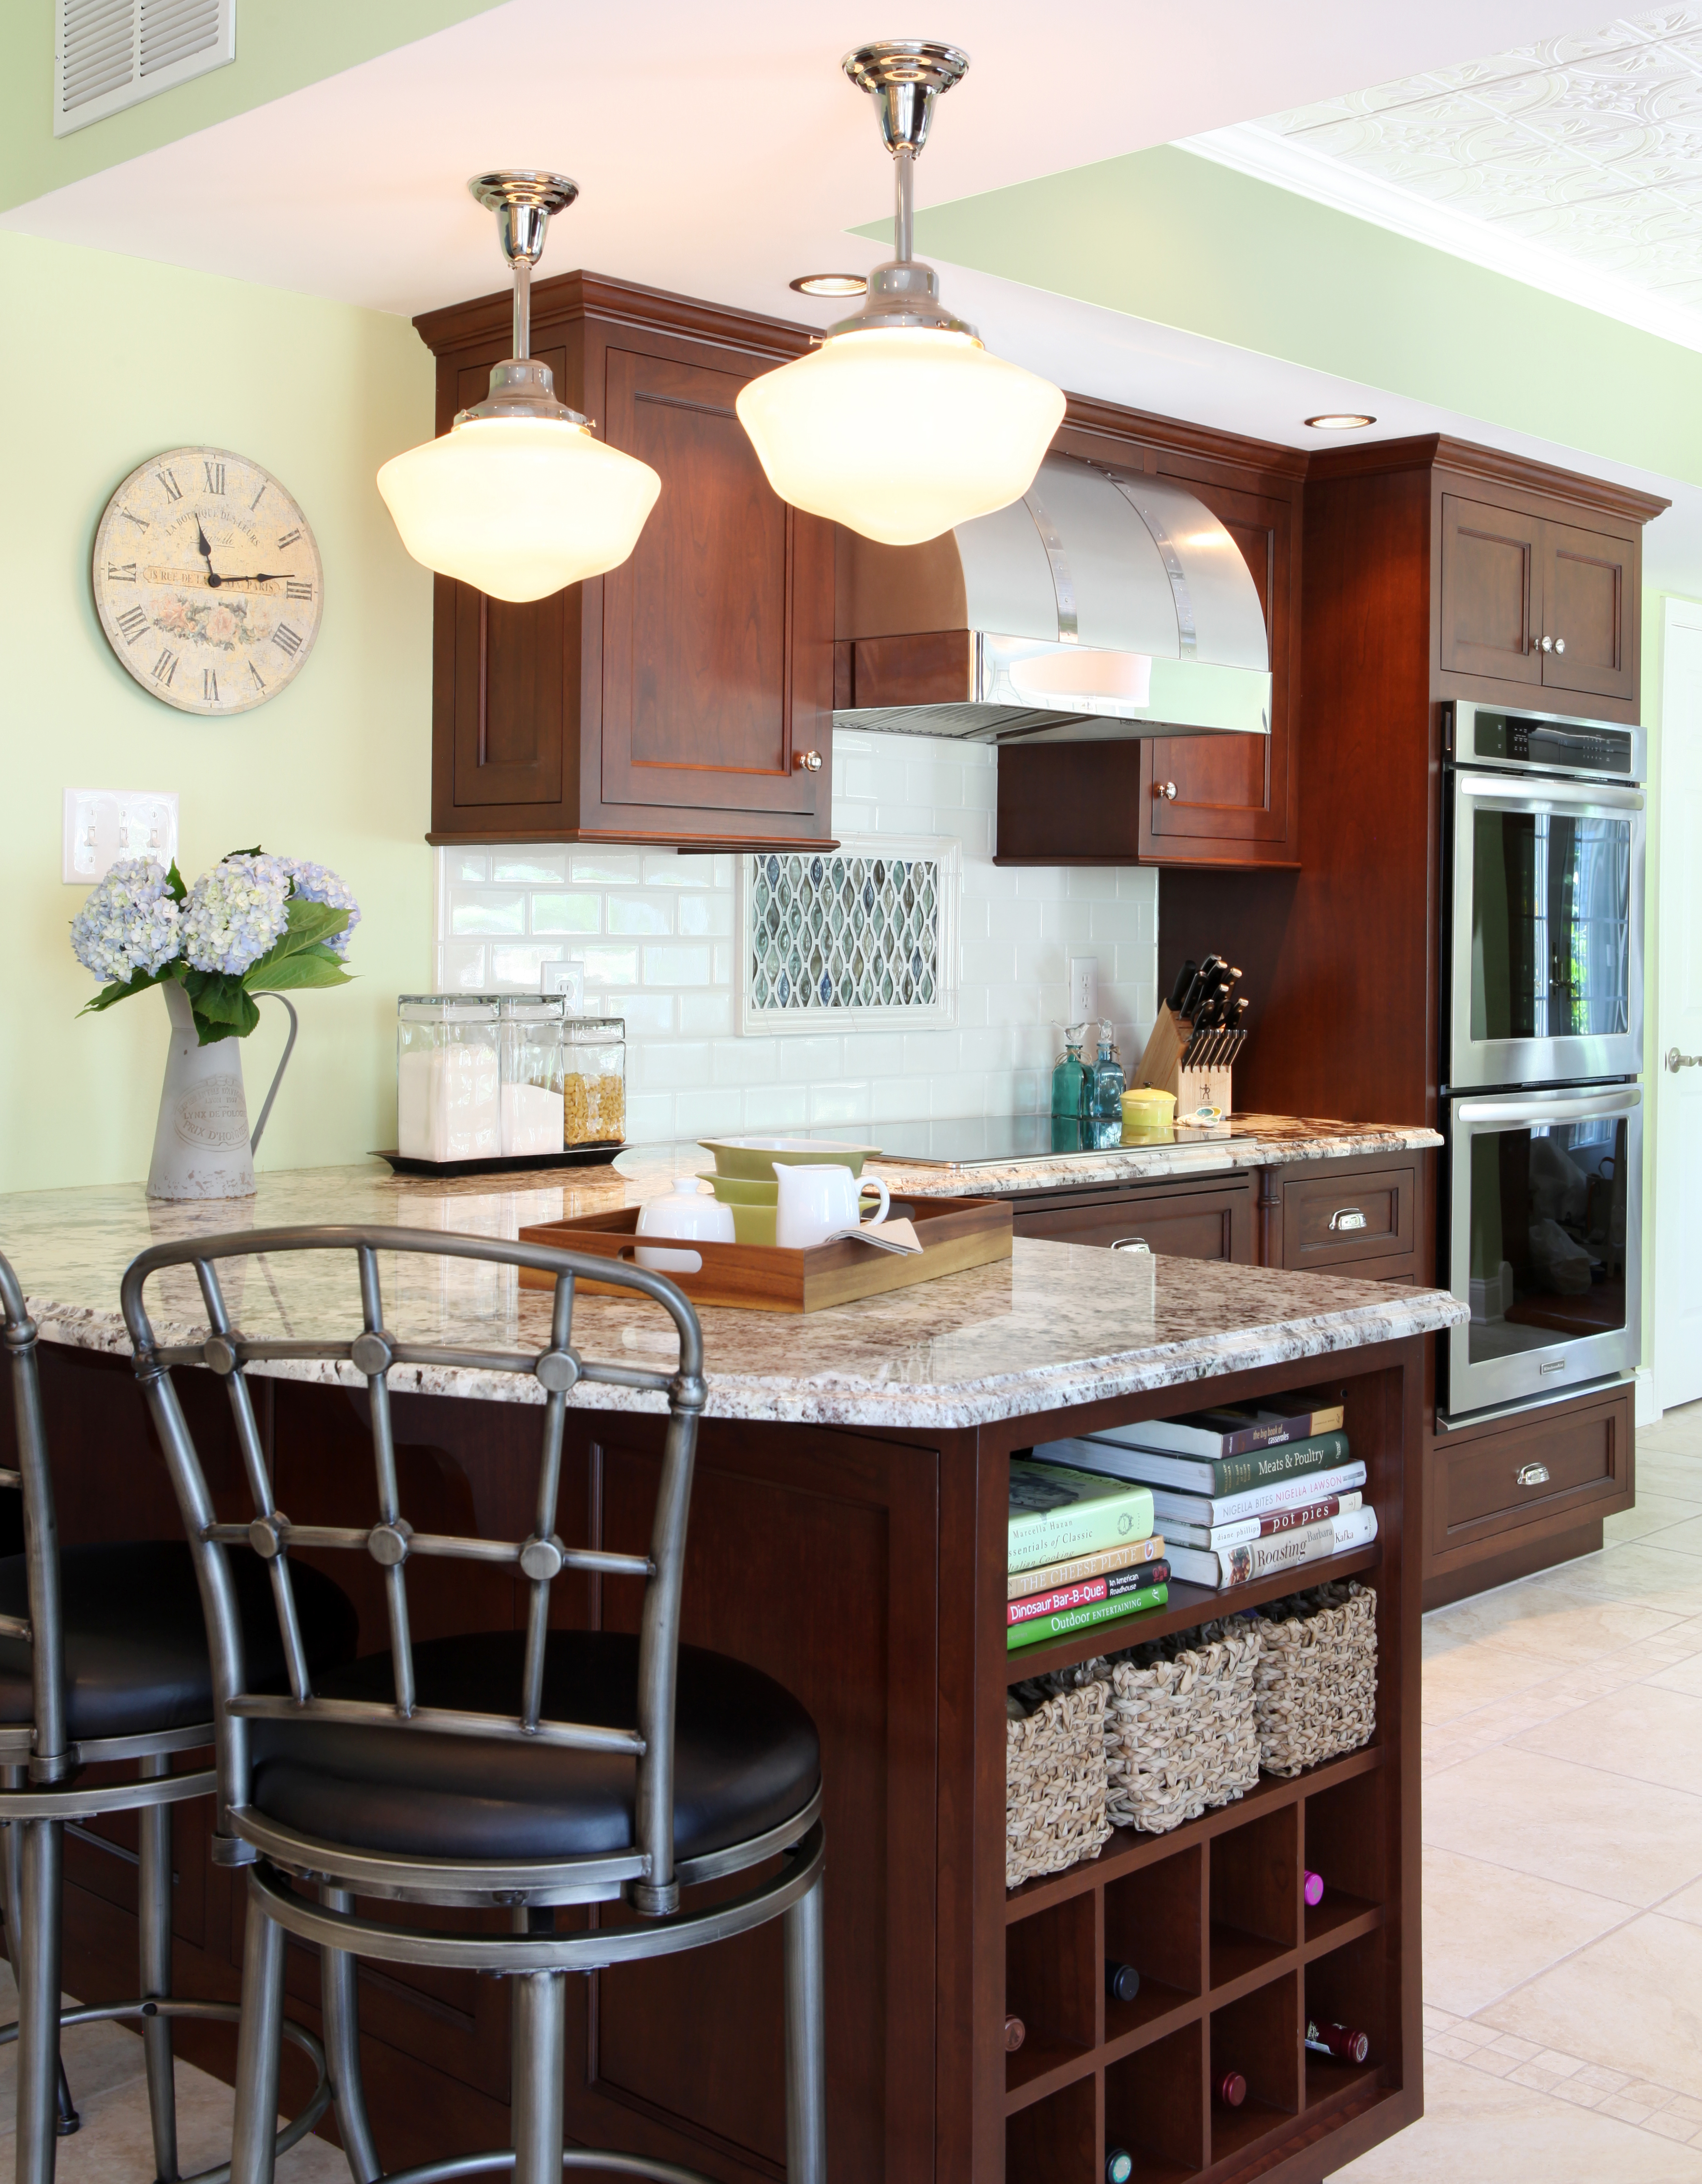 NGD Interiors of Churchville, PA Awarded Best of Houzz 2016   Newswire